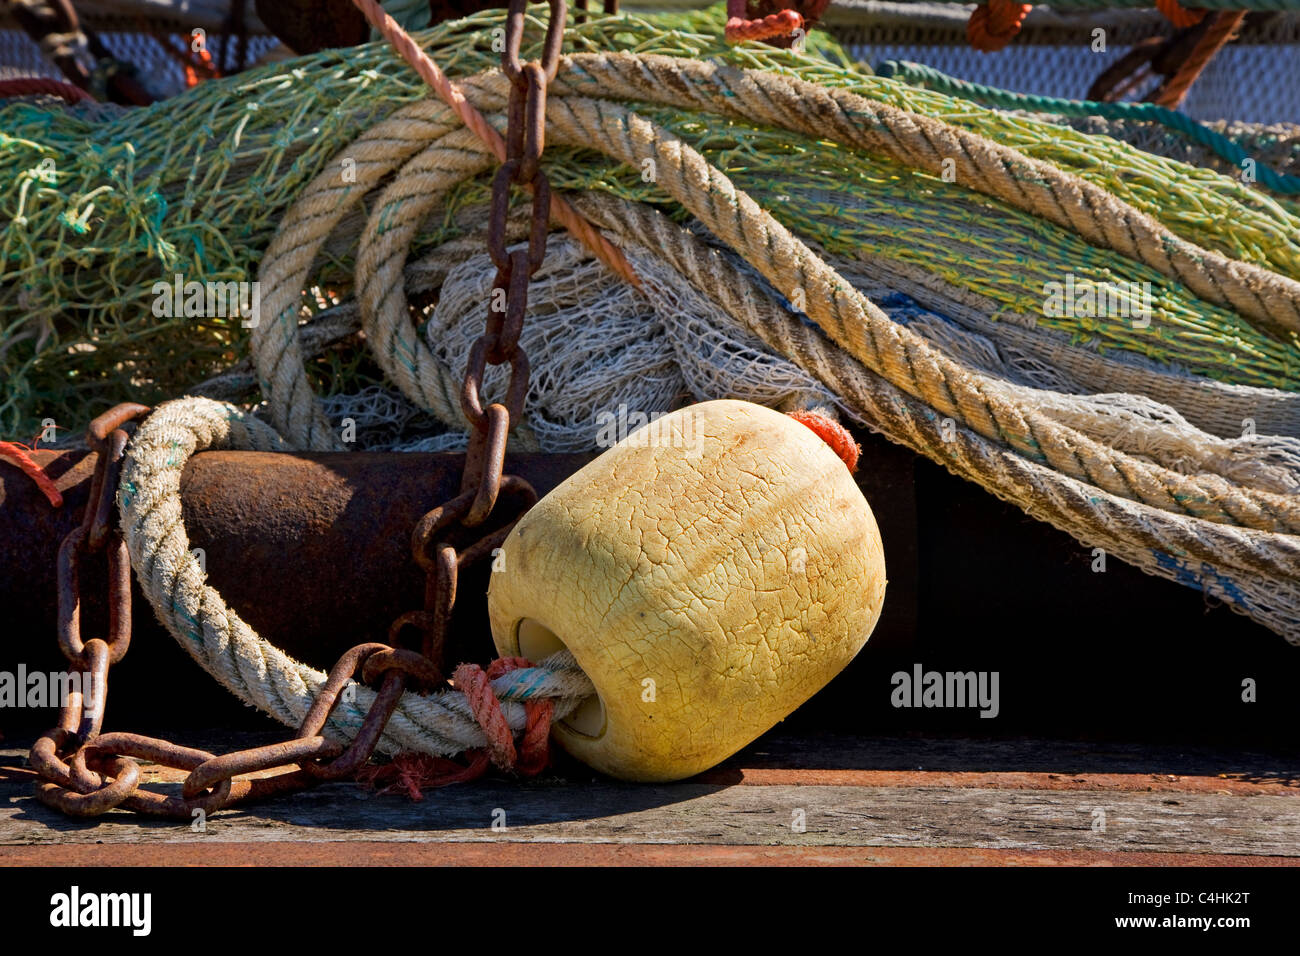 Fishing net at the Yerseke harbour, Zeeland, the Netherlands - Stock Image